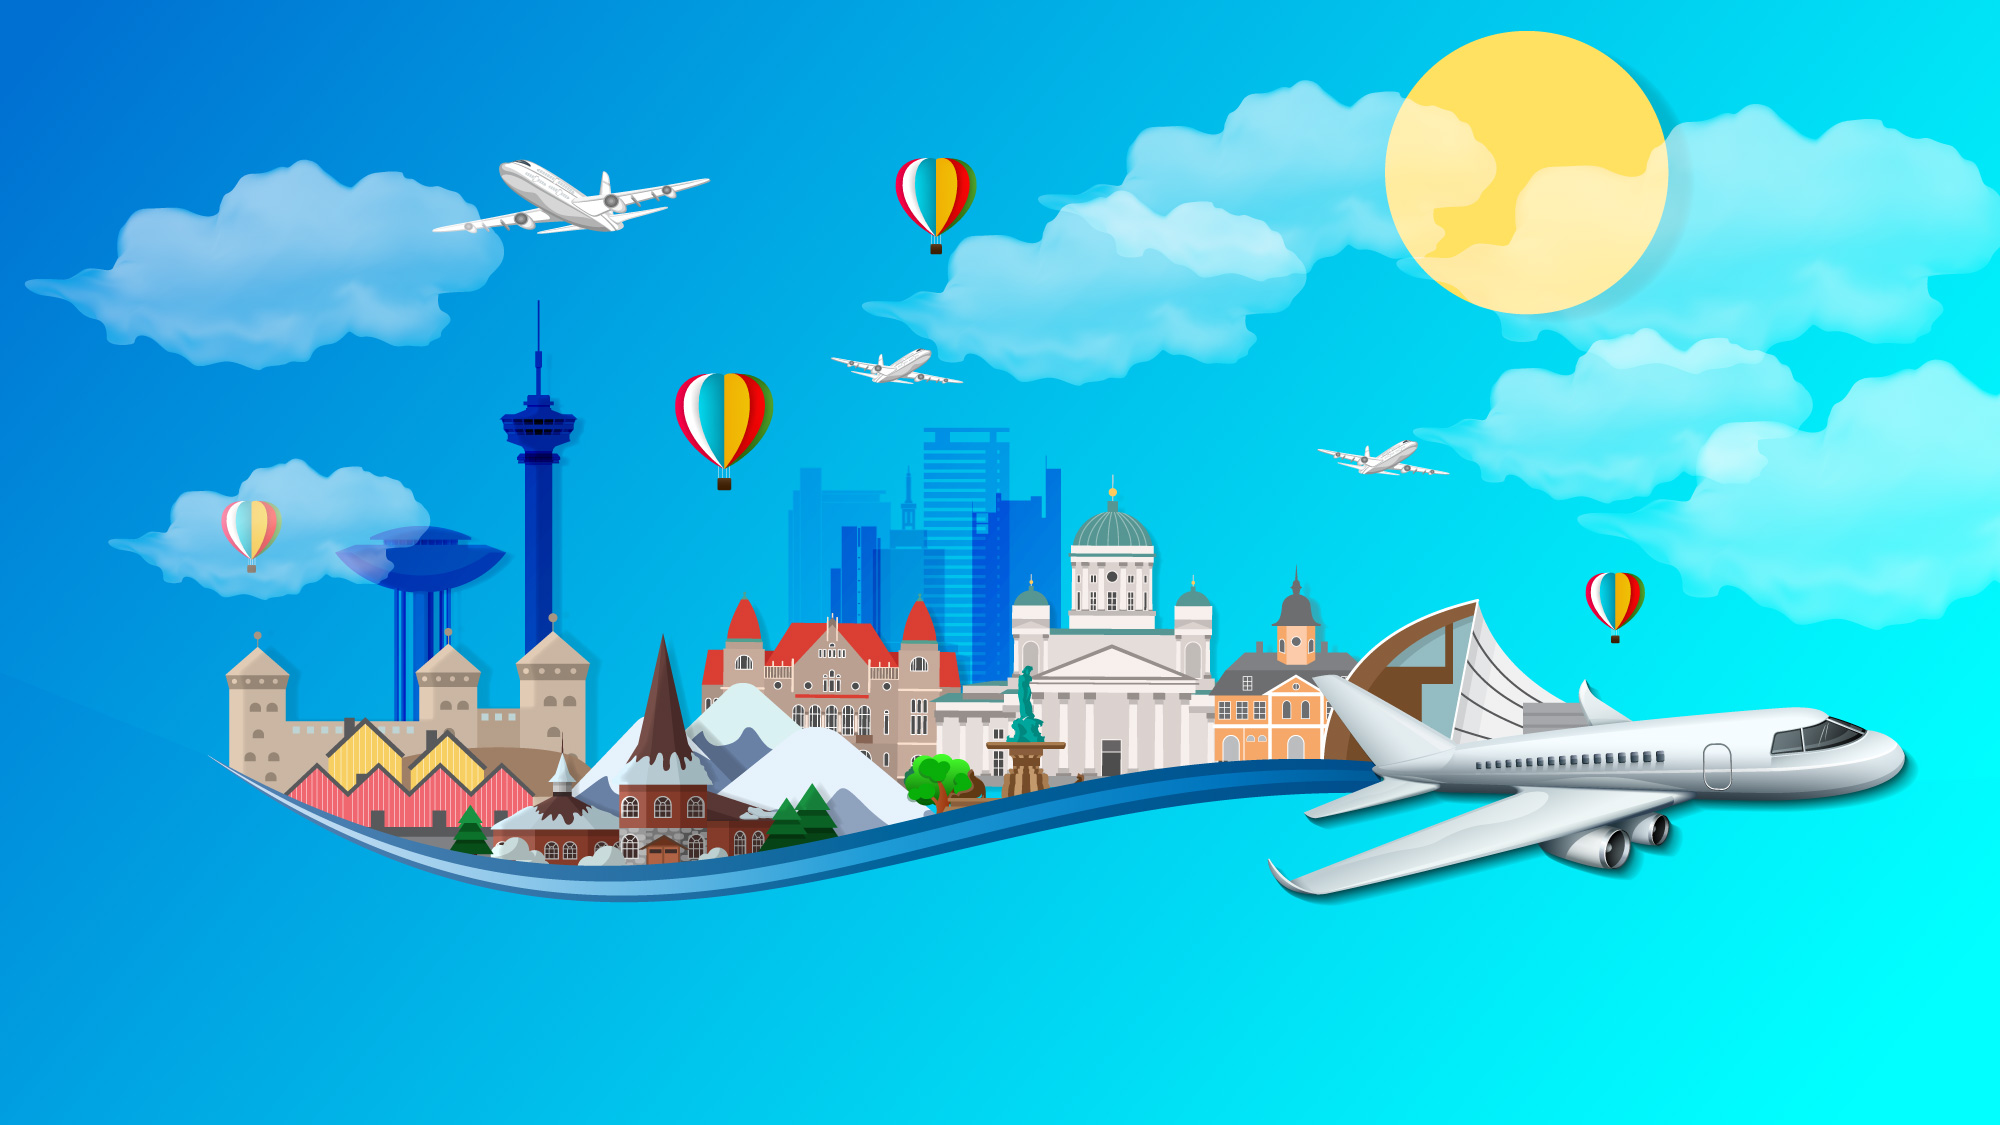 illustration of floating city and airplanes